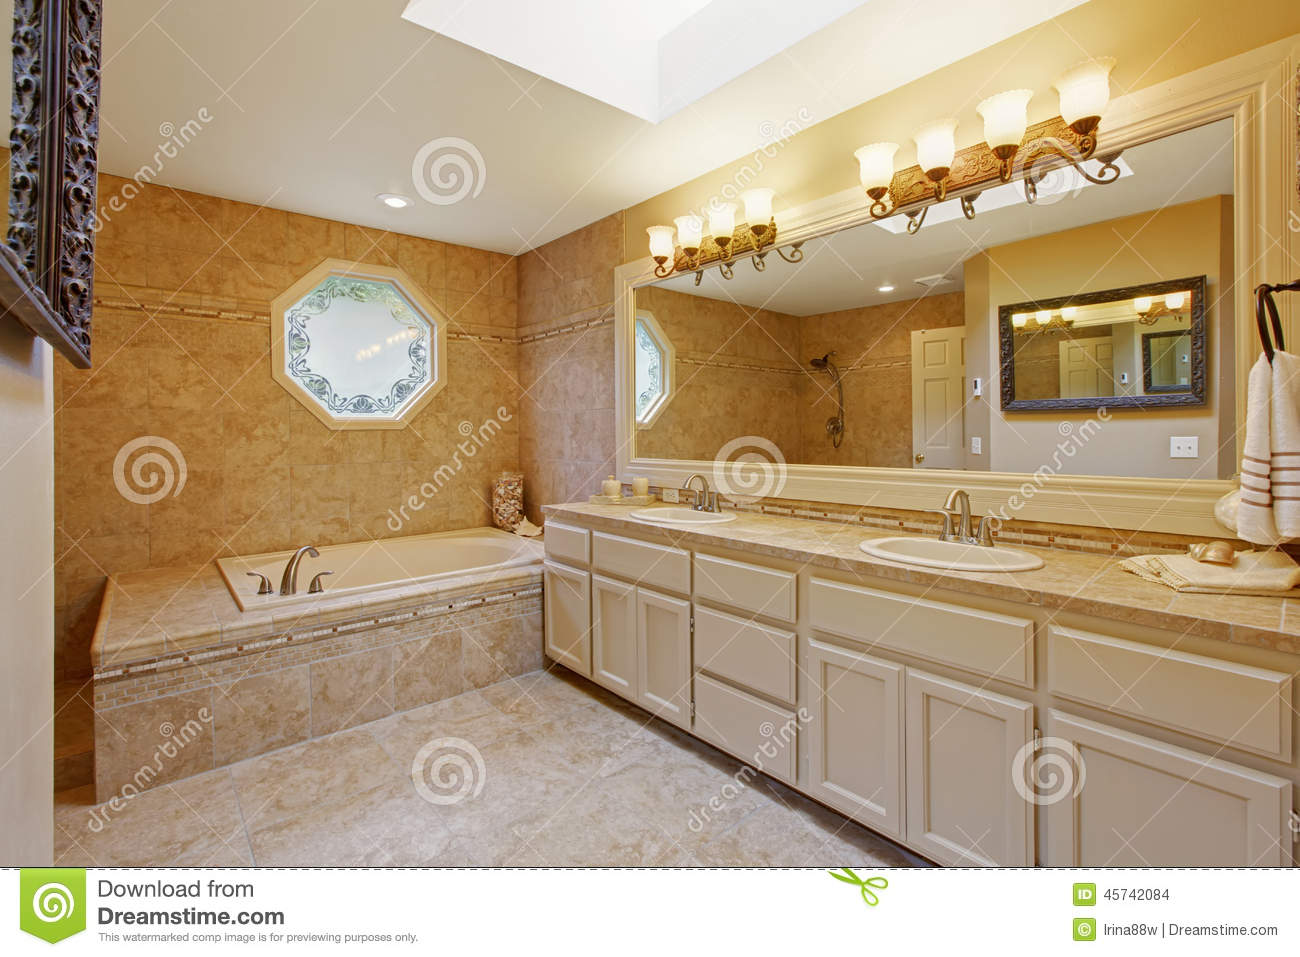 luxury bathroom interior with tile trim and big vanity cabinet with